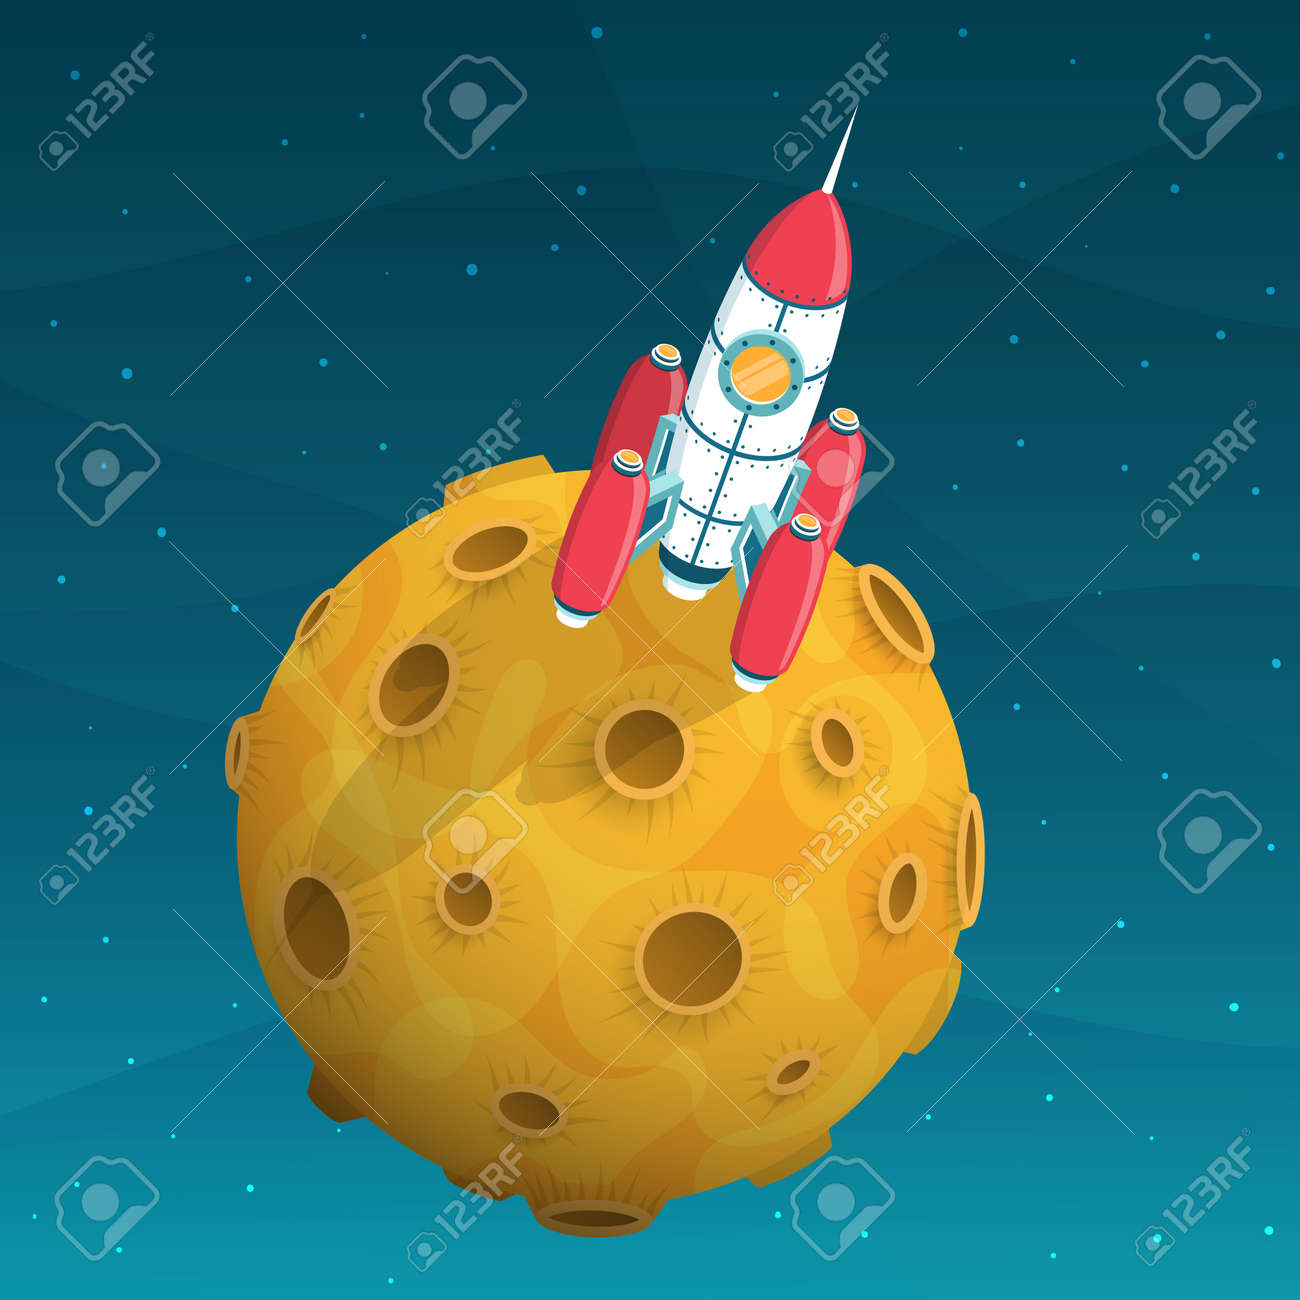 Rocket space ship standing on yellow planet with craters. 3d isometric illustration. Stock Vector - 92805247